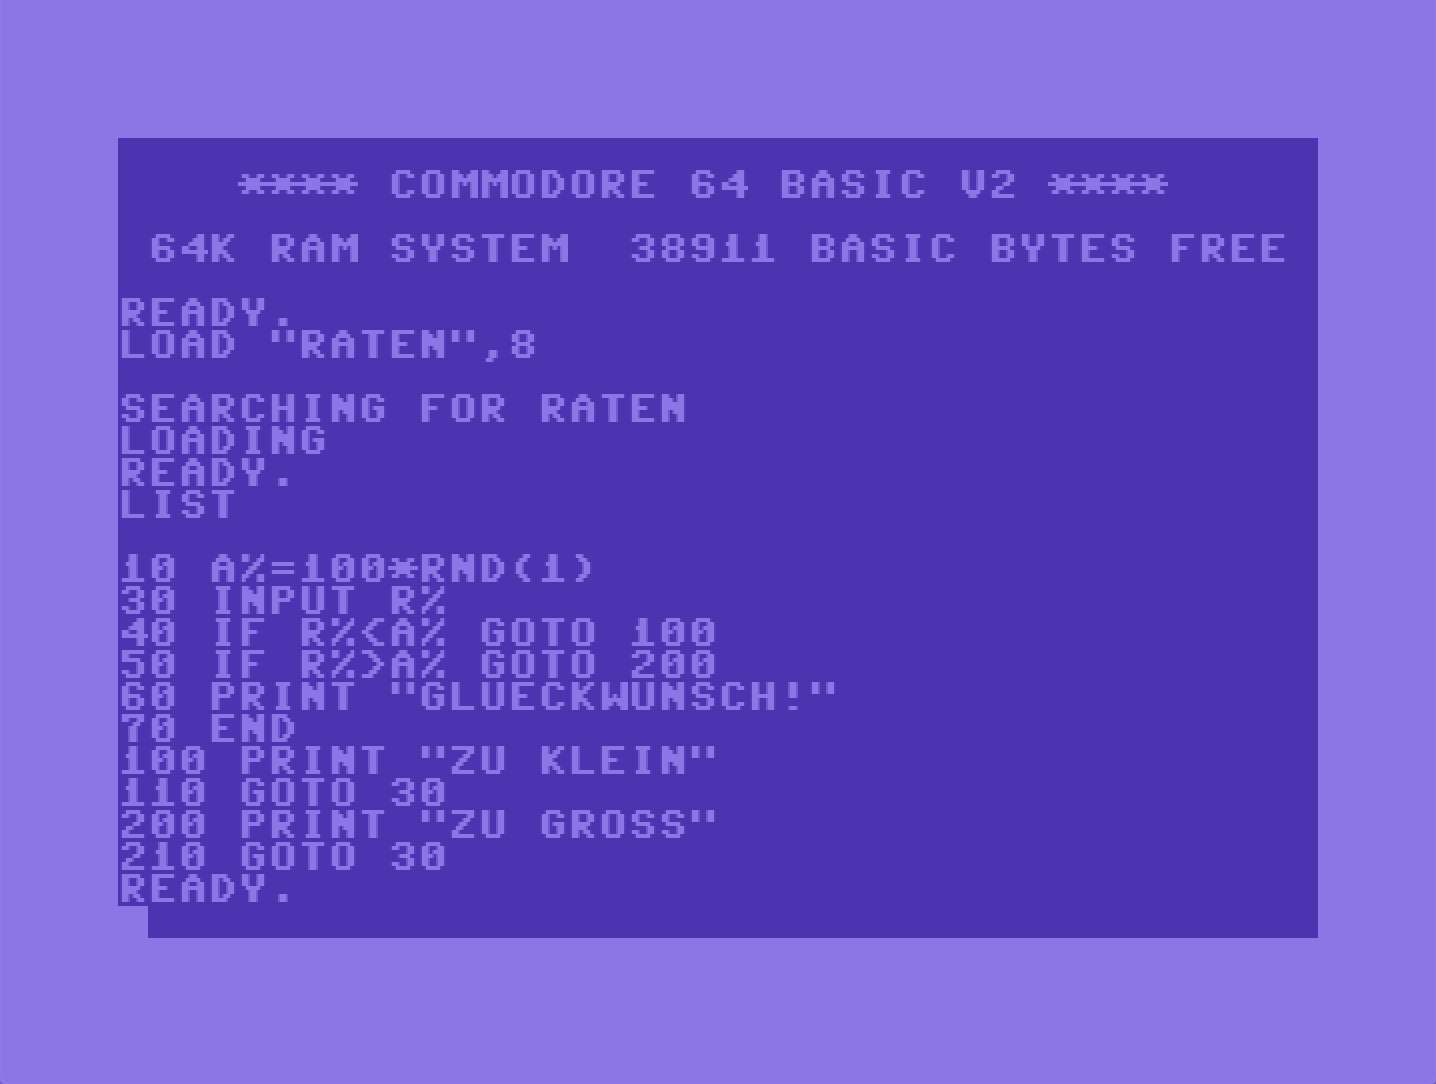 Loading a programme on the Commodore 64